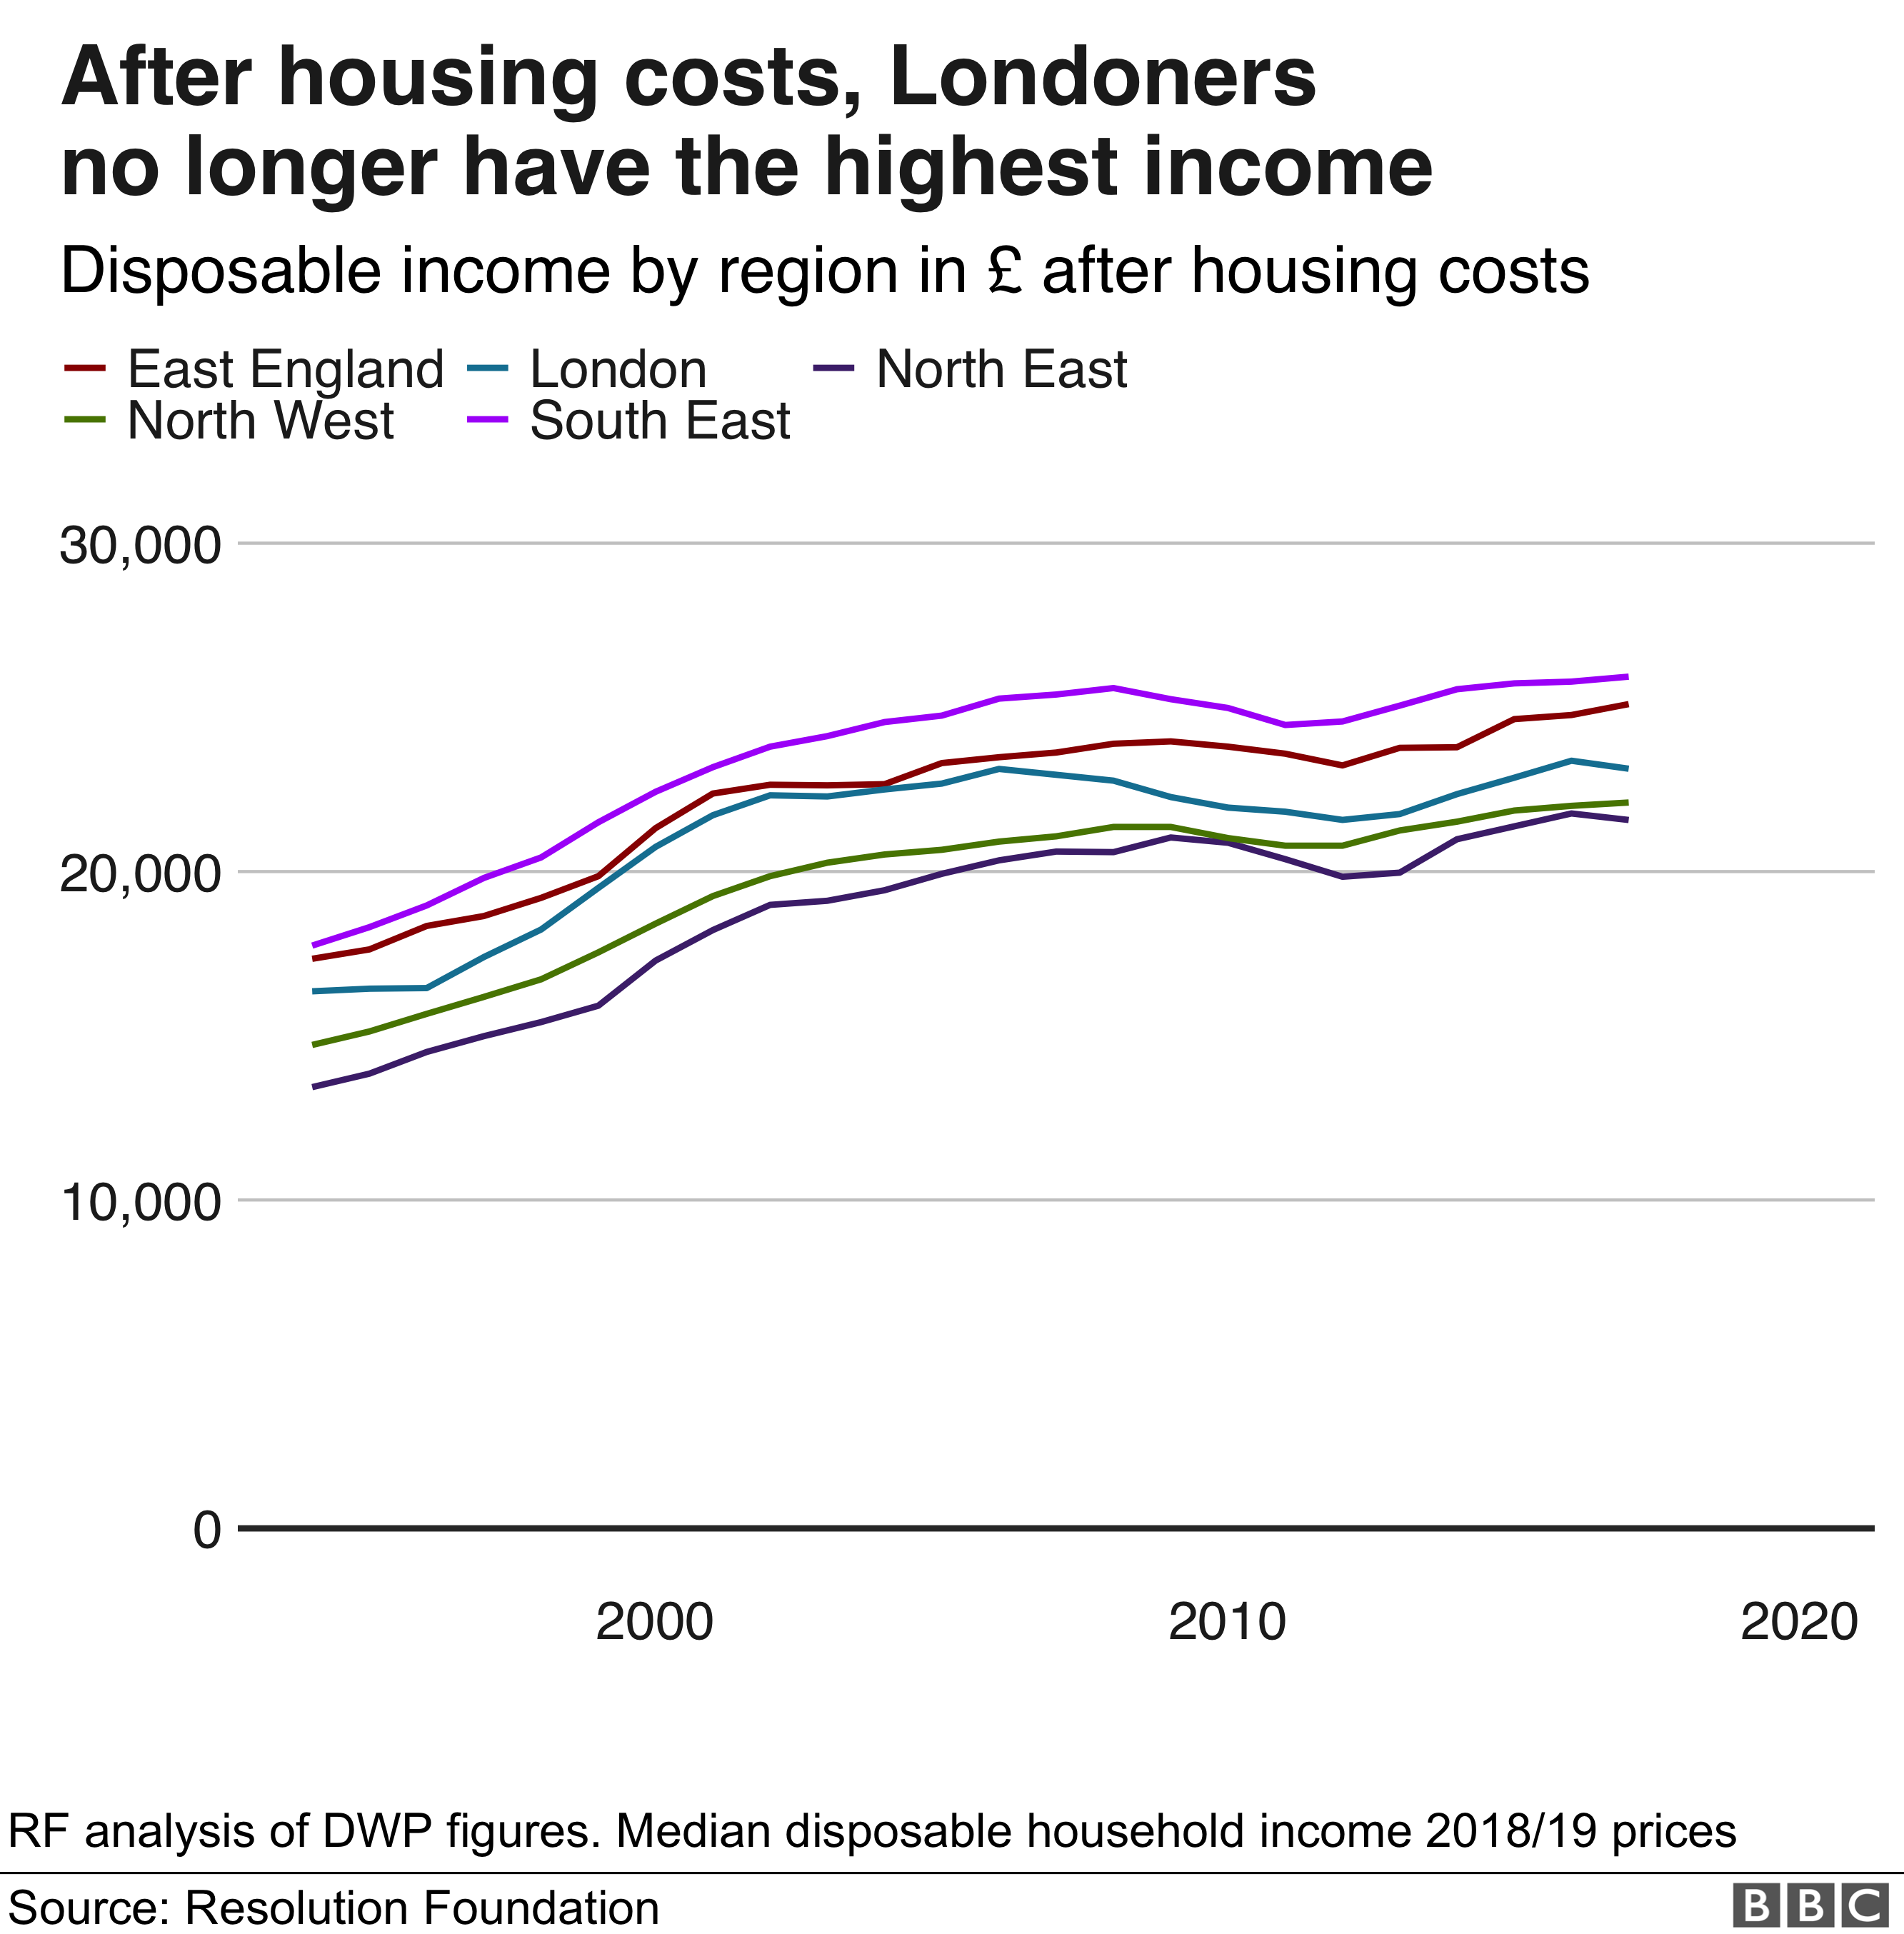 Chart showing disposable income after housing costs